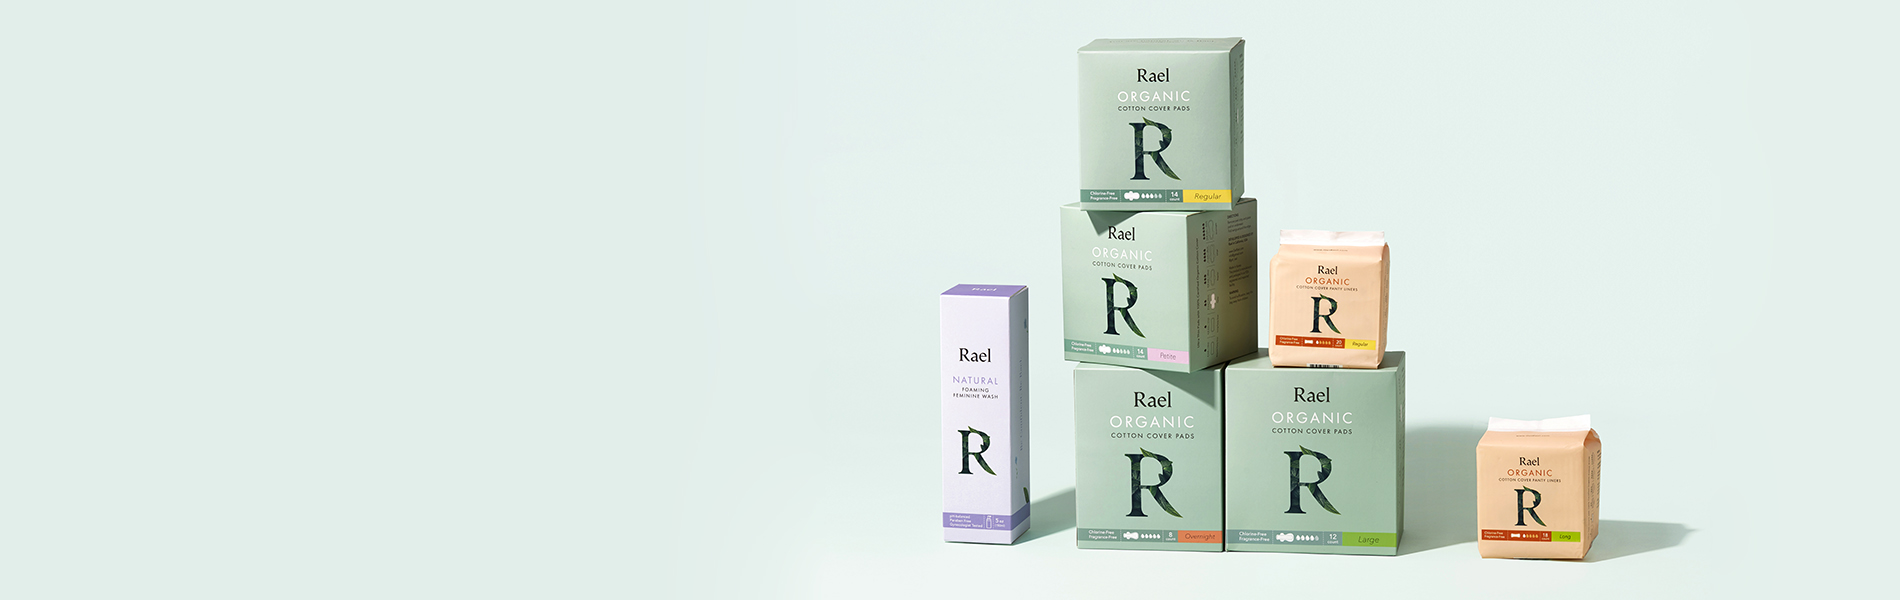 Rael, Natural Feminine Care Brand, Now Available at Target